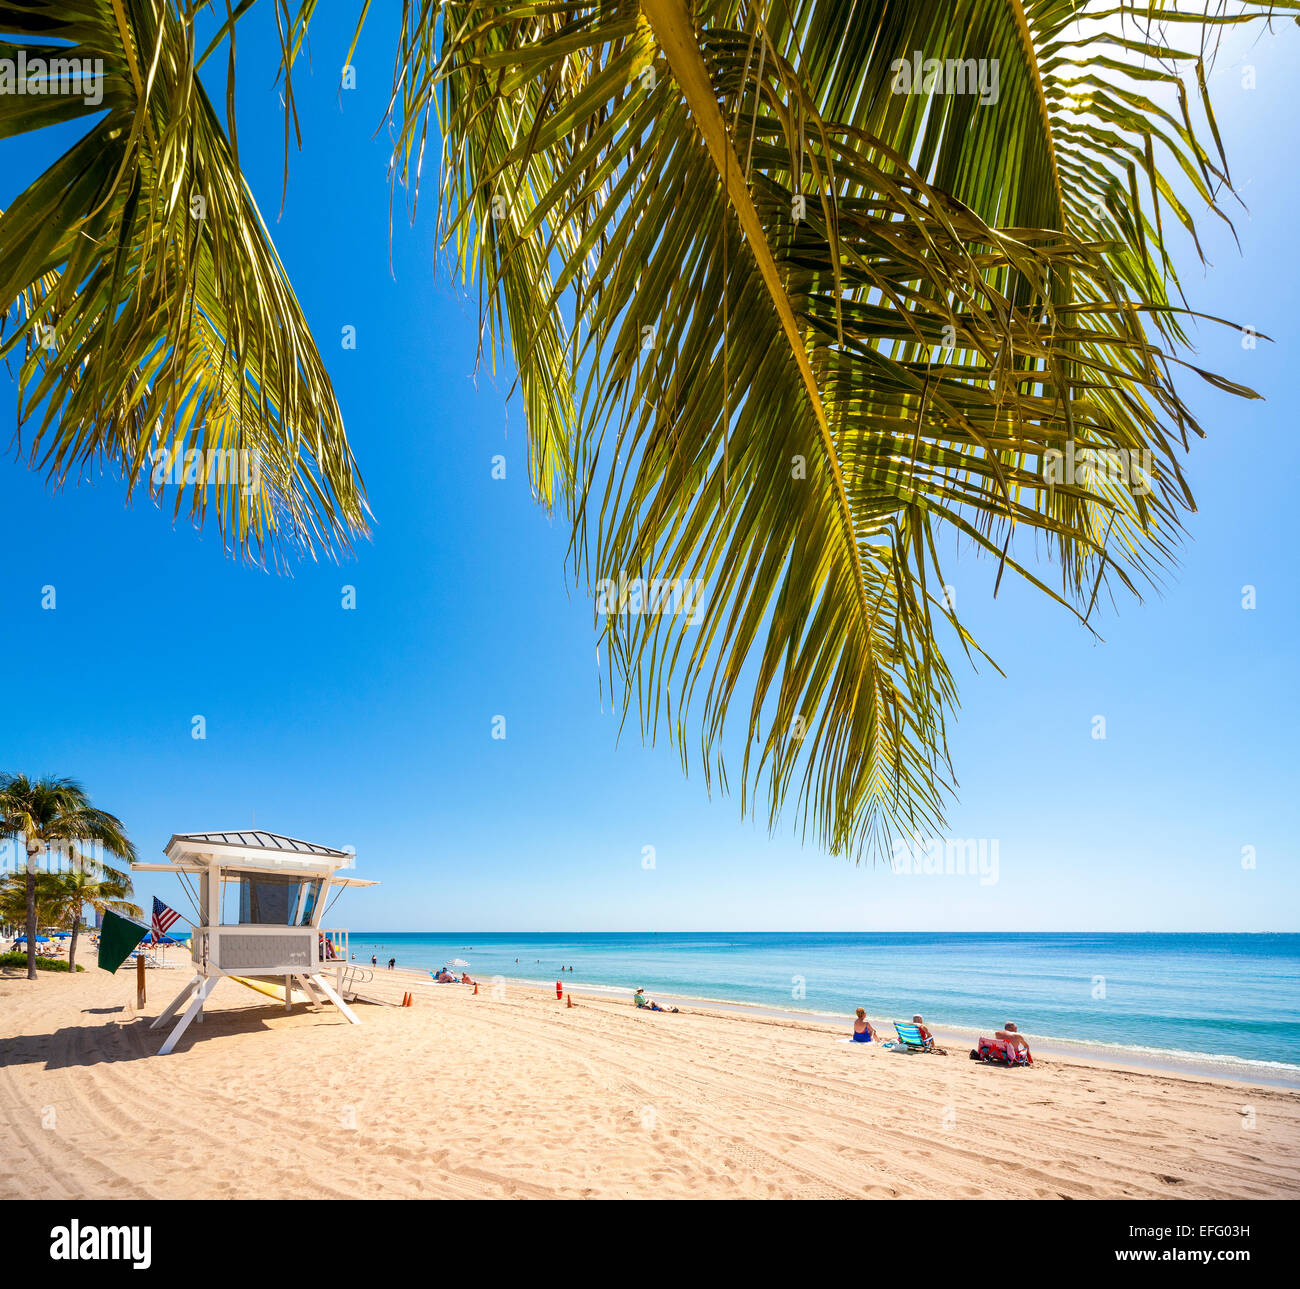 https://c7.alamy.com/comp/EFG03H/palm-trees-on-quiet-beach-at-ft-lauderdale-fort-lauderdale-beach-florida-EFG03H.jpg